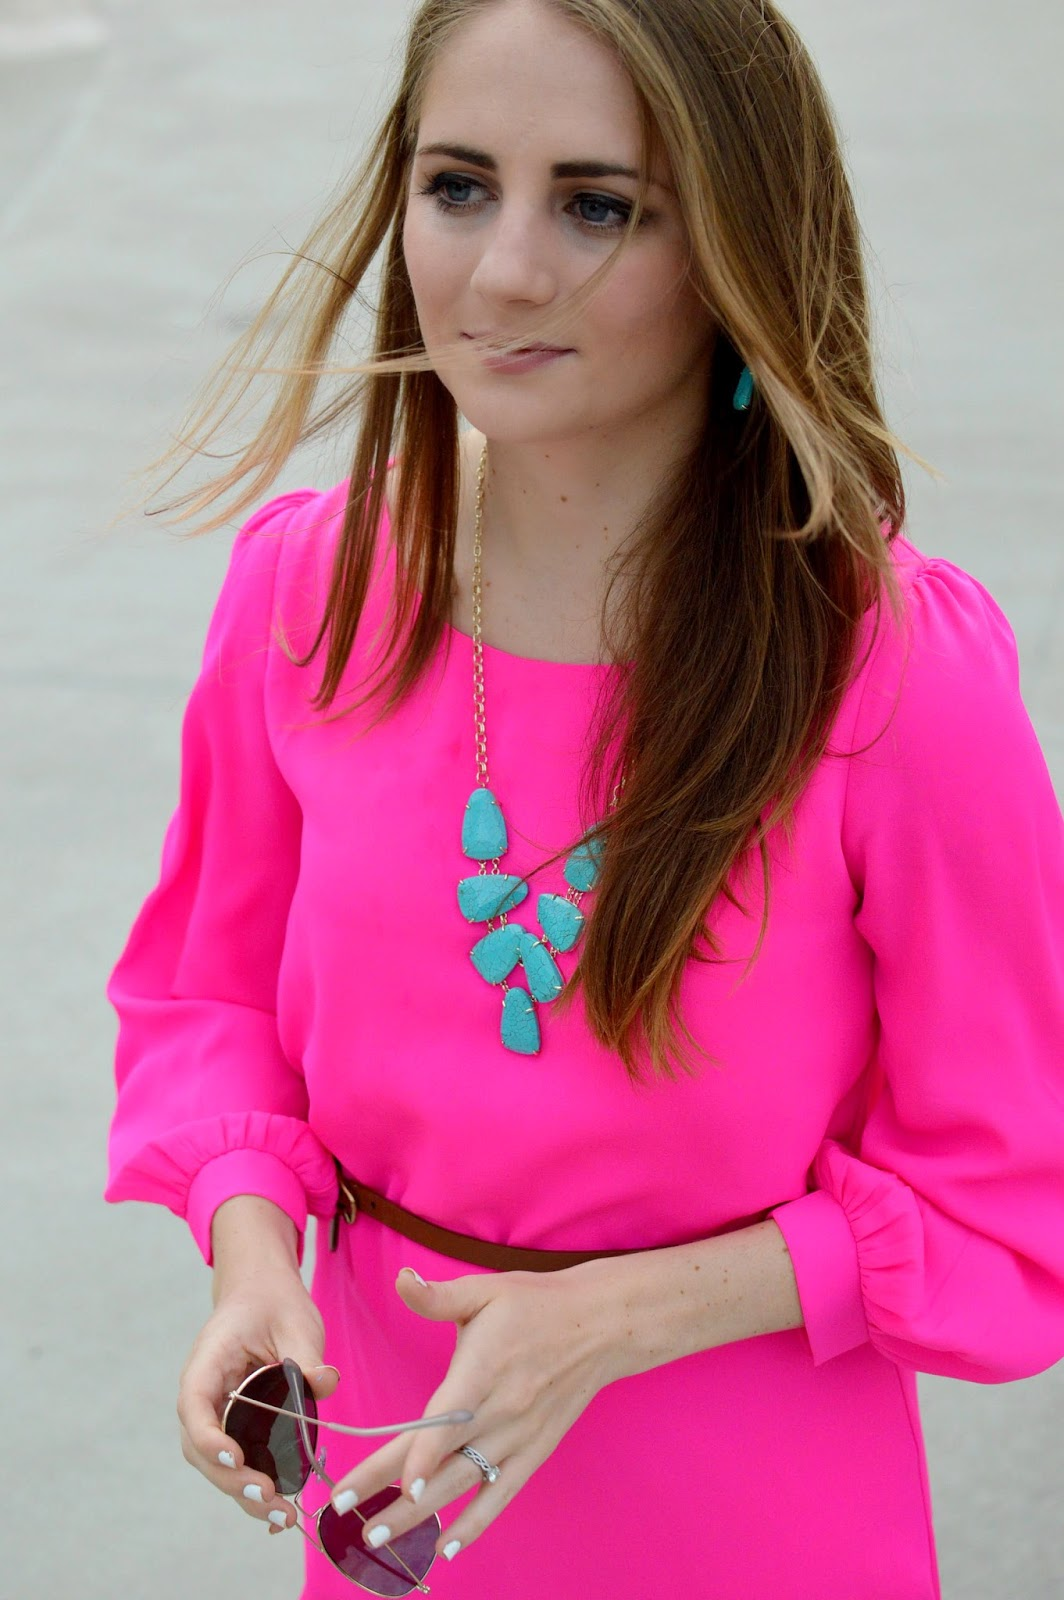 pink dress with turquoise accessories